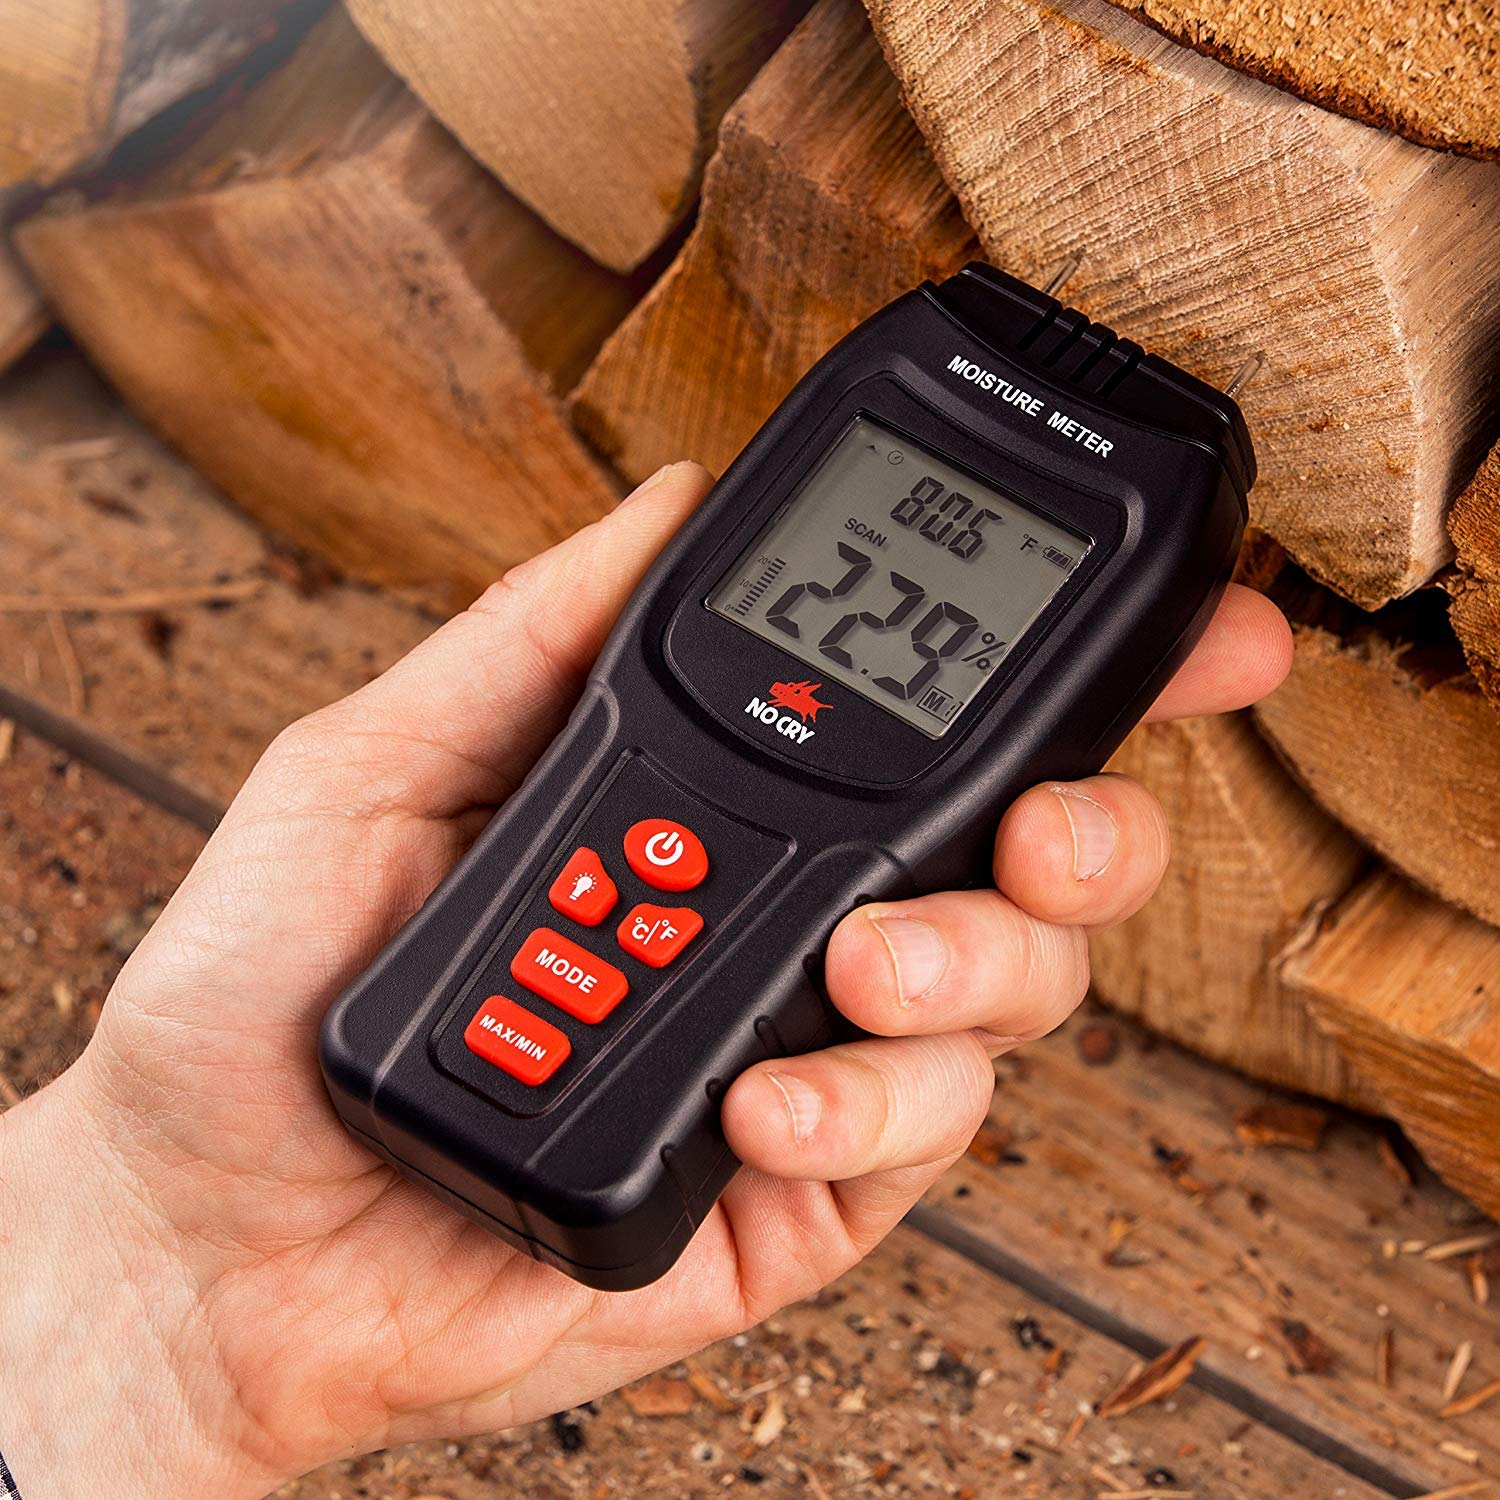 NoCry Digital Moisture Meter - Water Leak Detector and Thermometer for Wood & Building Materials, Battery and Replacement Electronic Probes Included by NoCry (Image #4)